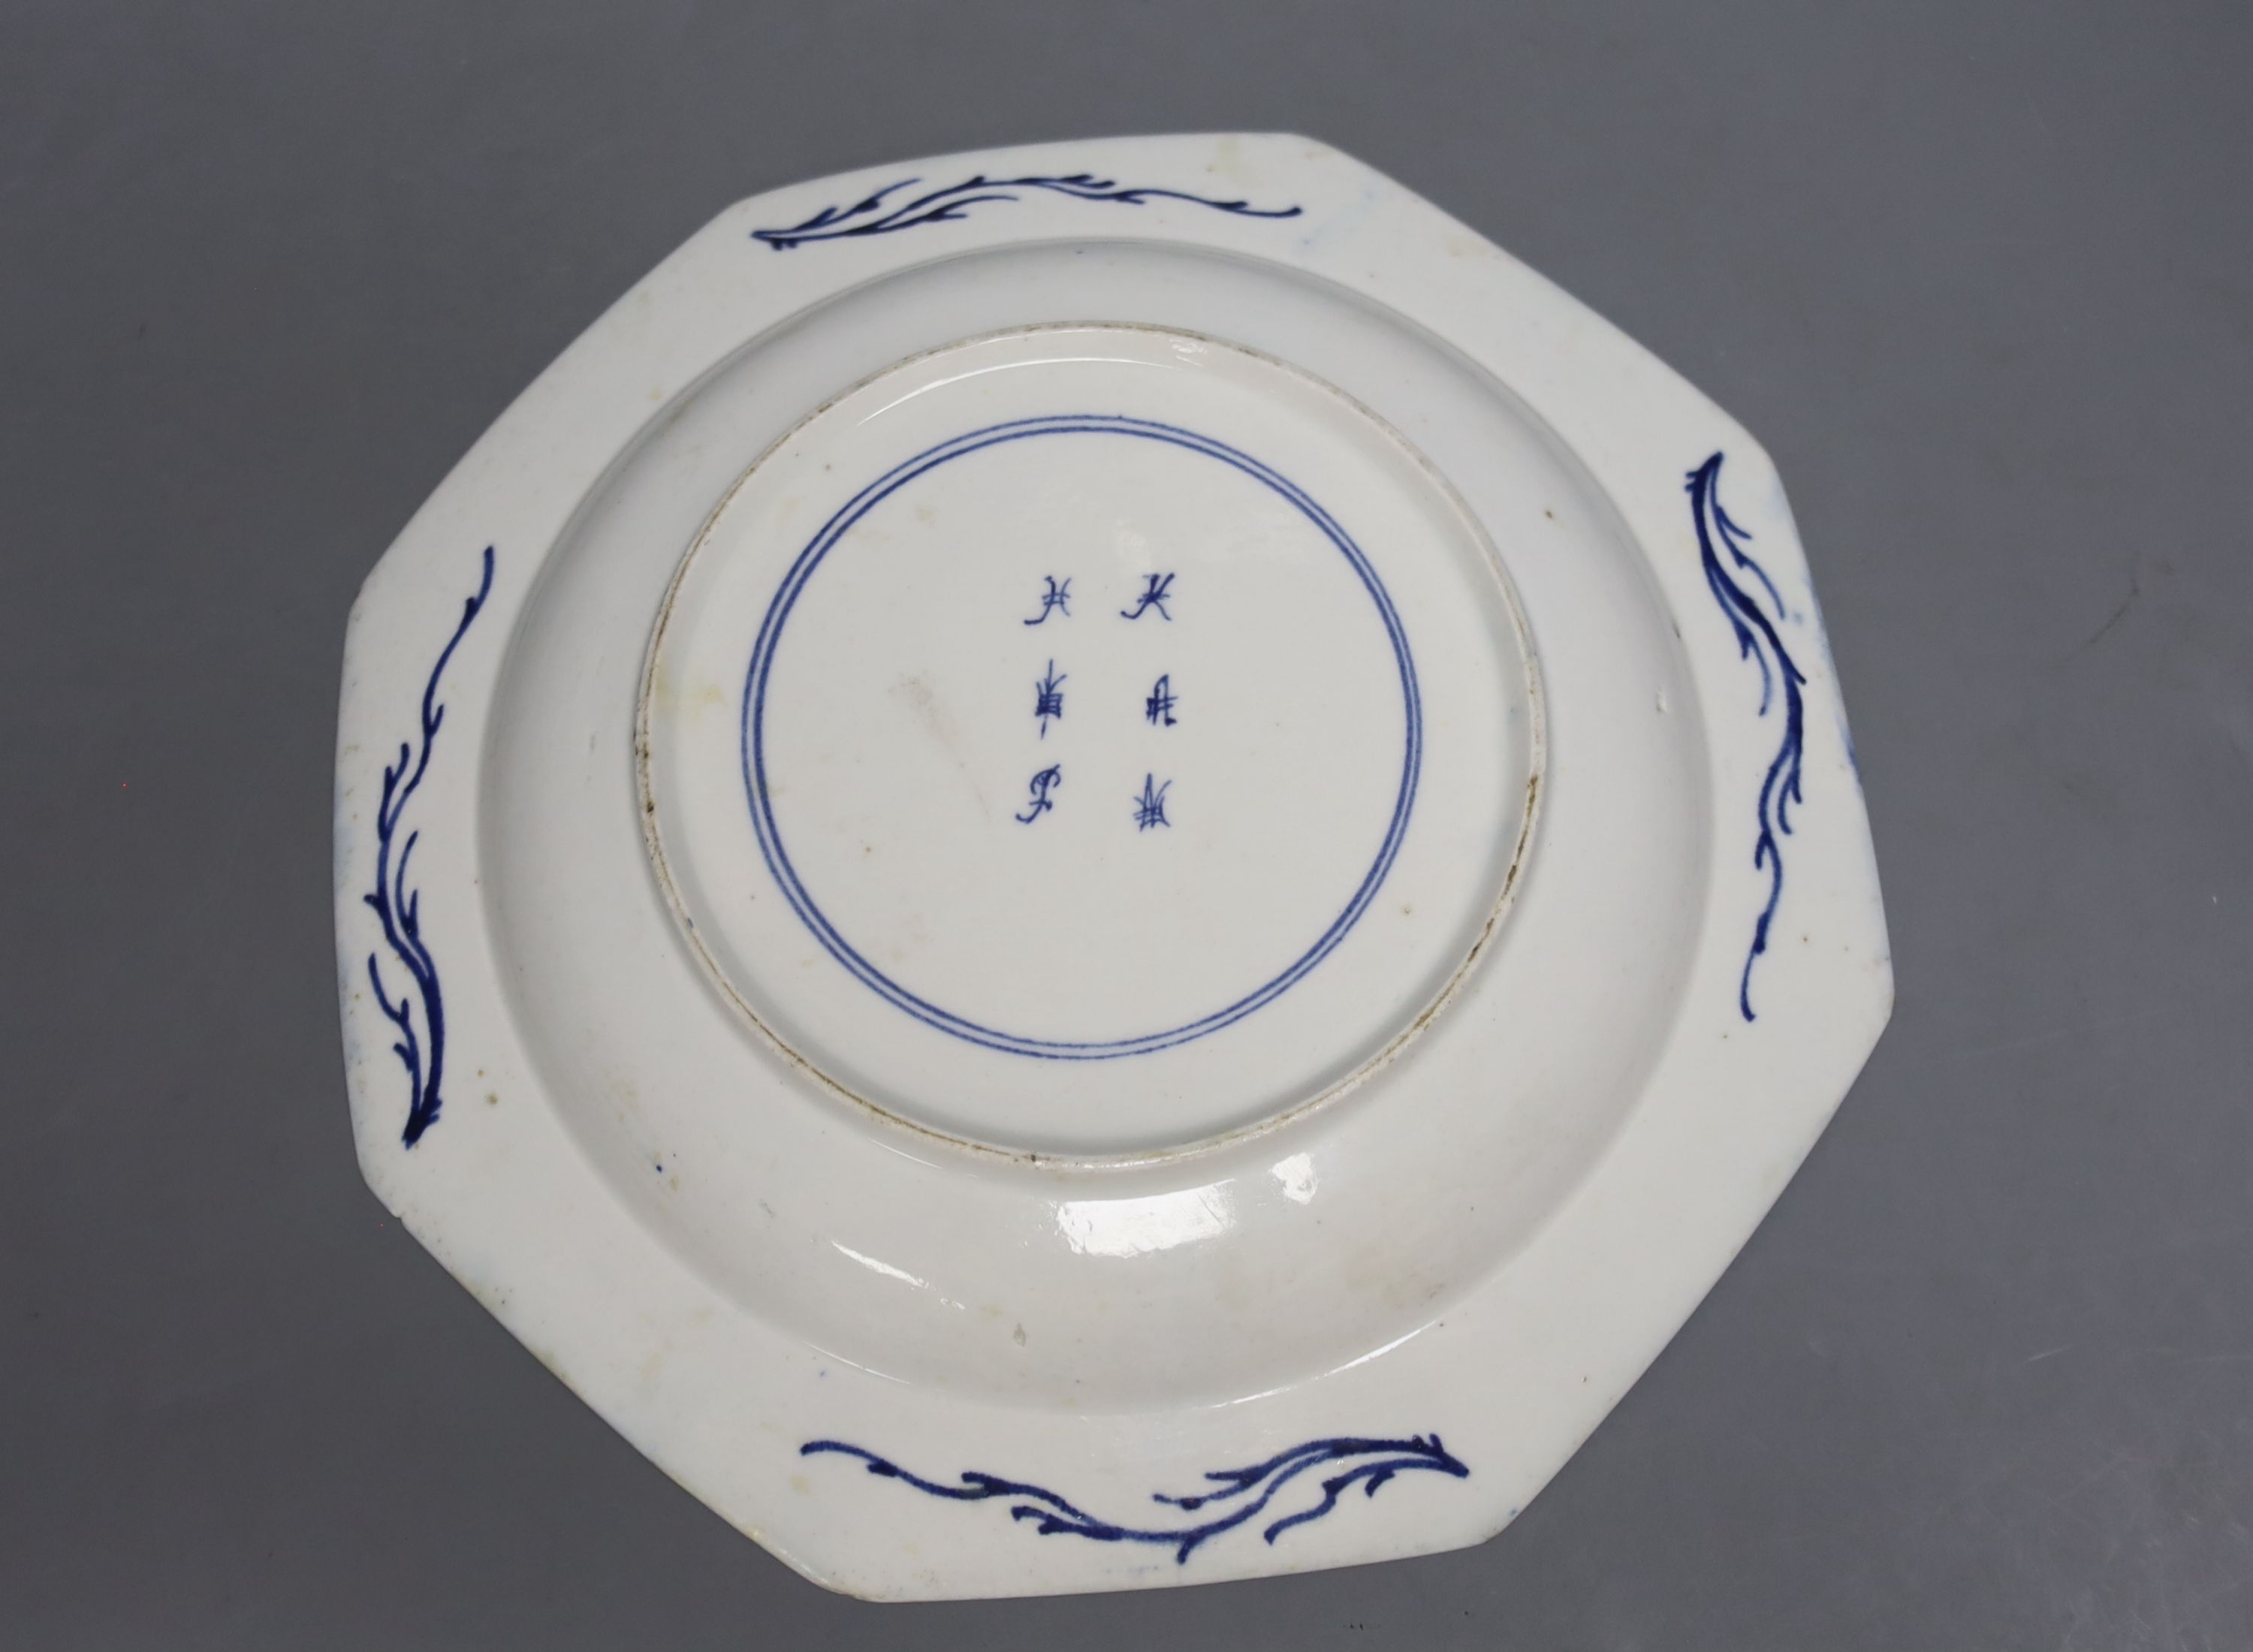 A Bow octagonal plate, painted with landscapes on a blue ground, c.1757, six character mark, 22cm - Image 2 of 2